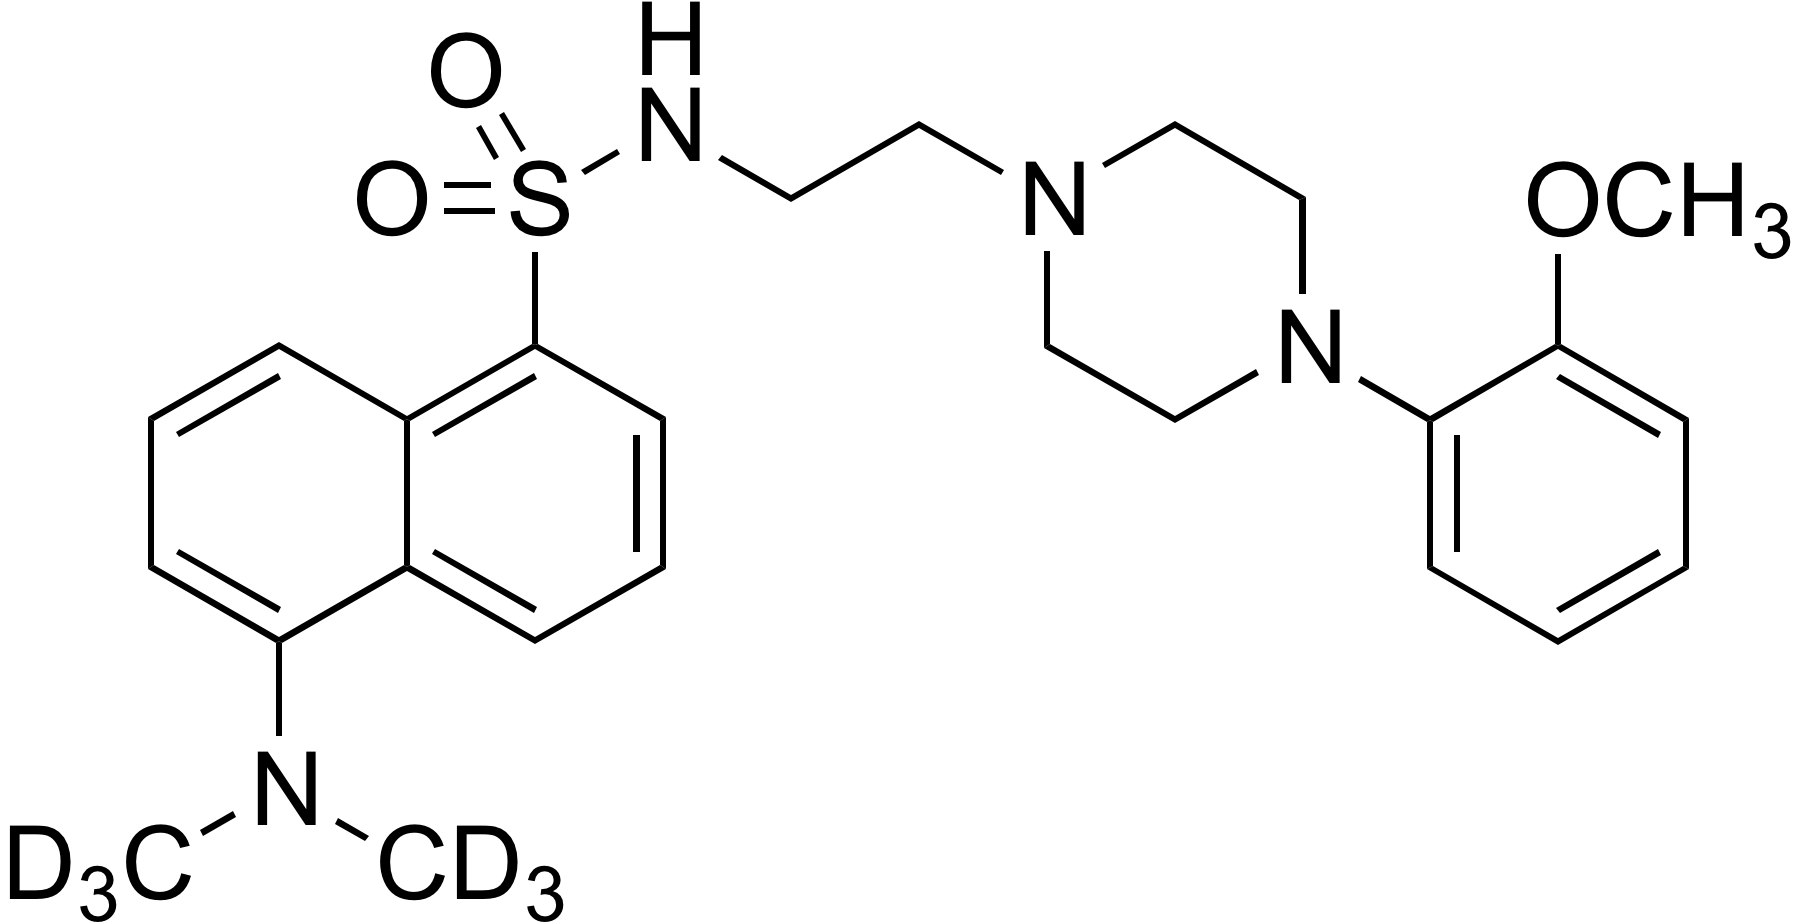 5-(Dimethylamino-d<sub>6</sub>)-N-[2-[4-(2-methoxyphenyl)piperazin-1-yl]ethyl]-1-naphthalenesulfonamide